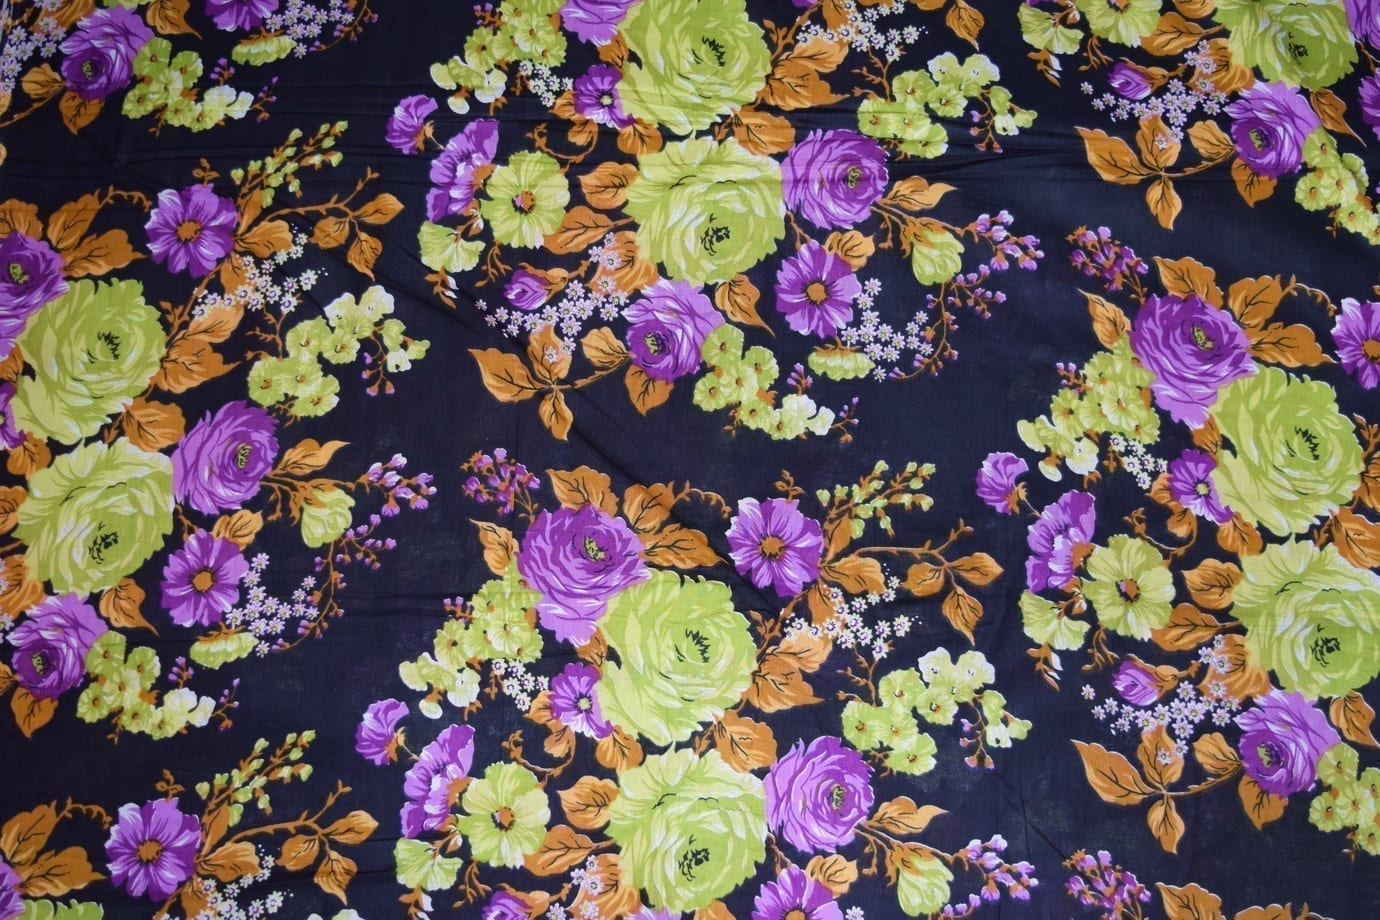 100% PURE Soft COTTON PRINTED FABRIC PC292 2